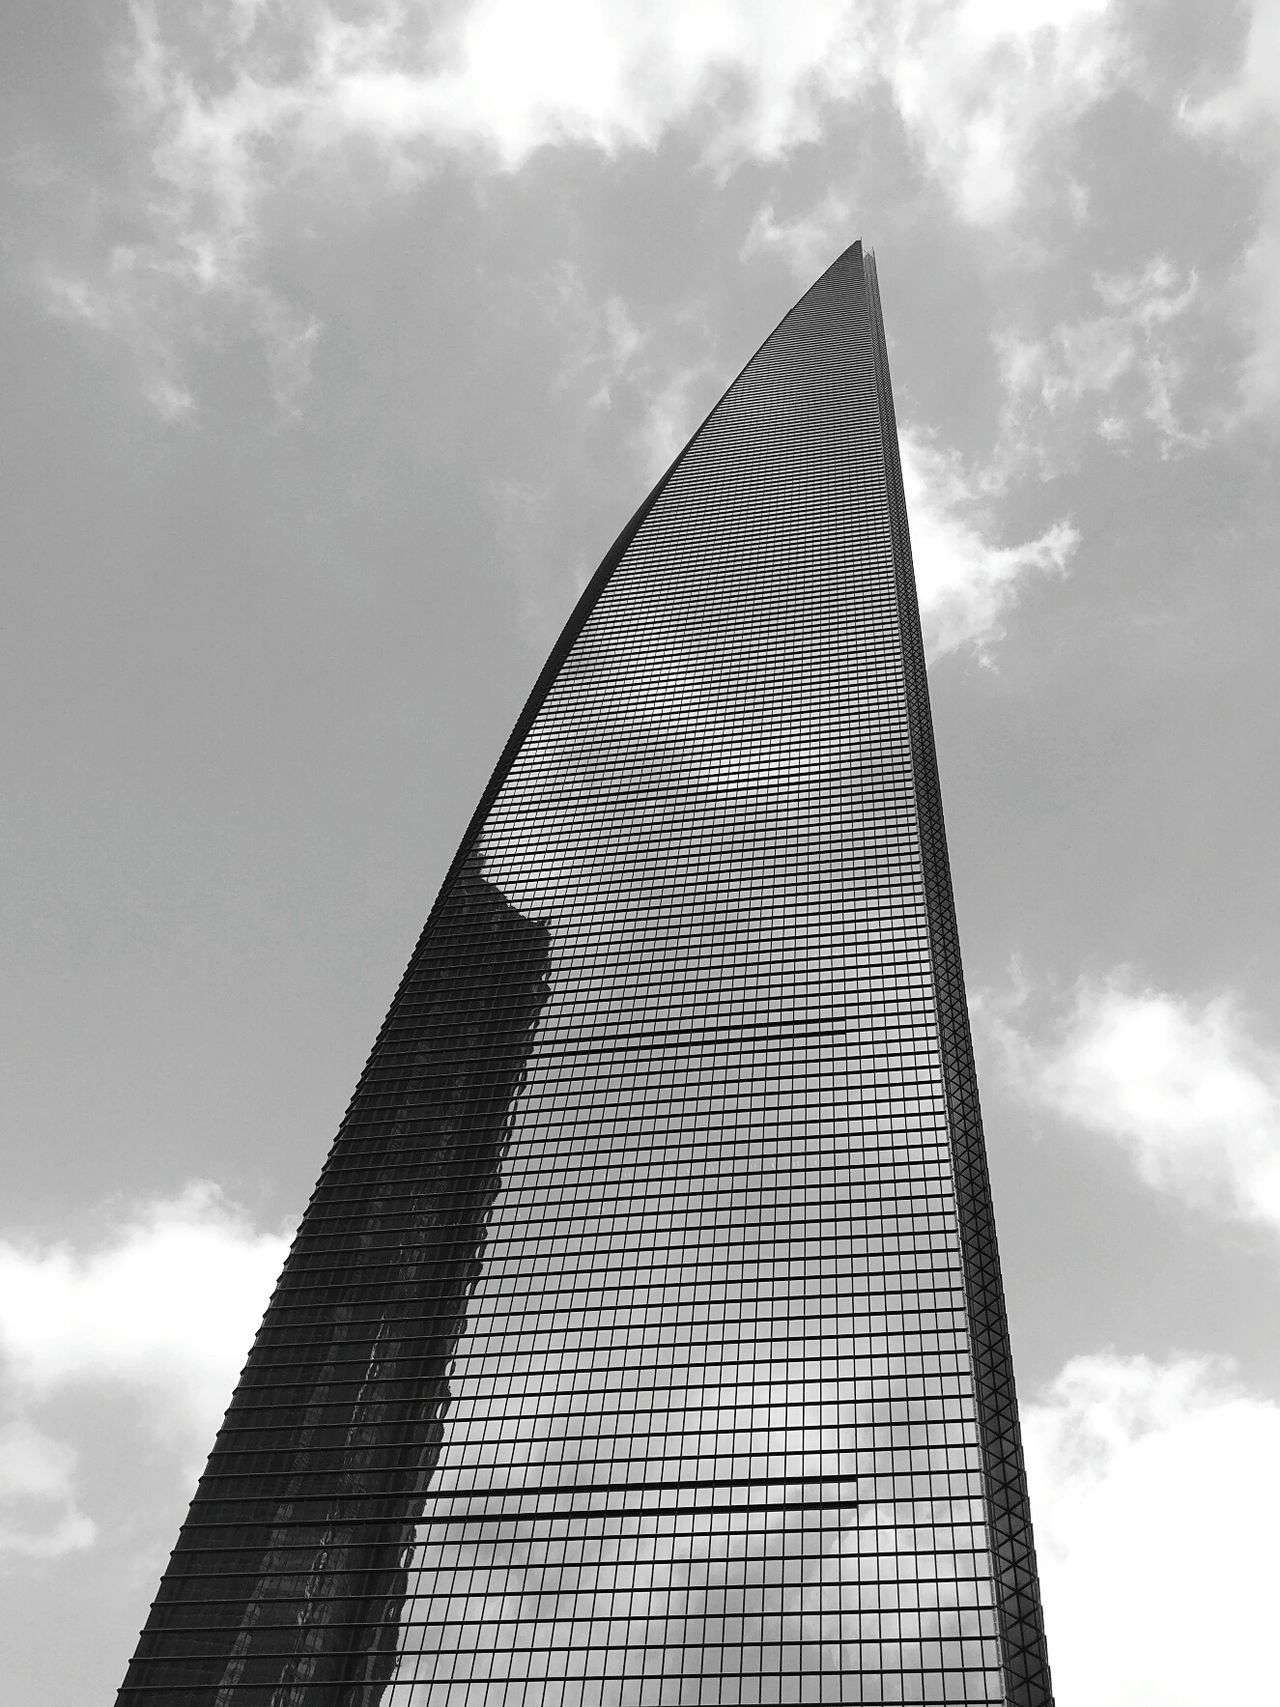 Cloud - Sky Sky Low Angle View No People Architecture Outdoors Skyscraper Day Financialcentre Shanghailife Tallest Building EyeEm Gallery Focus Urban Photography Reflection Reflection In The Window Black And White Photography Upwards Shot Pattern Lowangleview Eyeemphoto EyeEm In China EyeEm Best Shots Clouds Collection